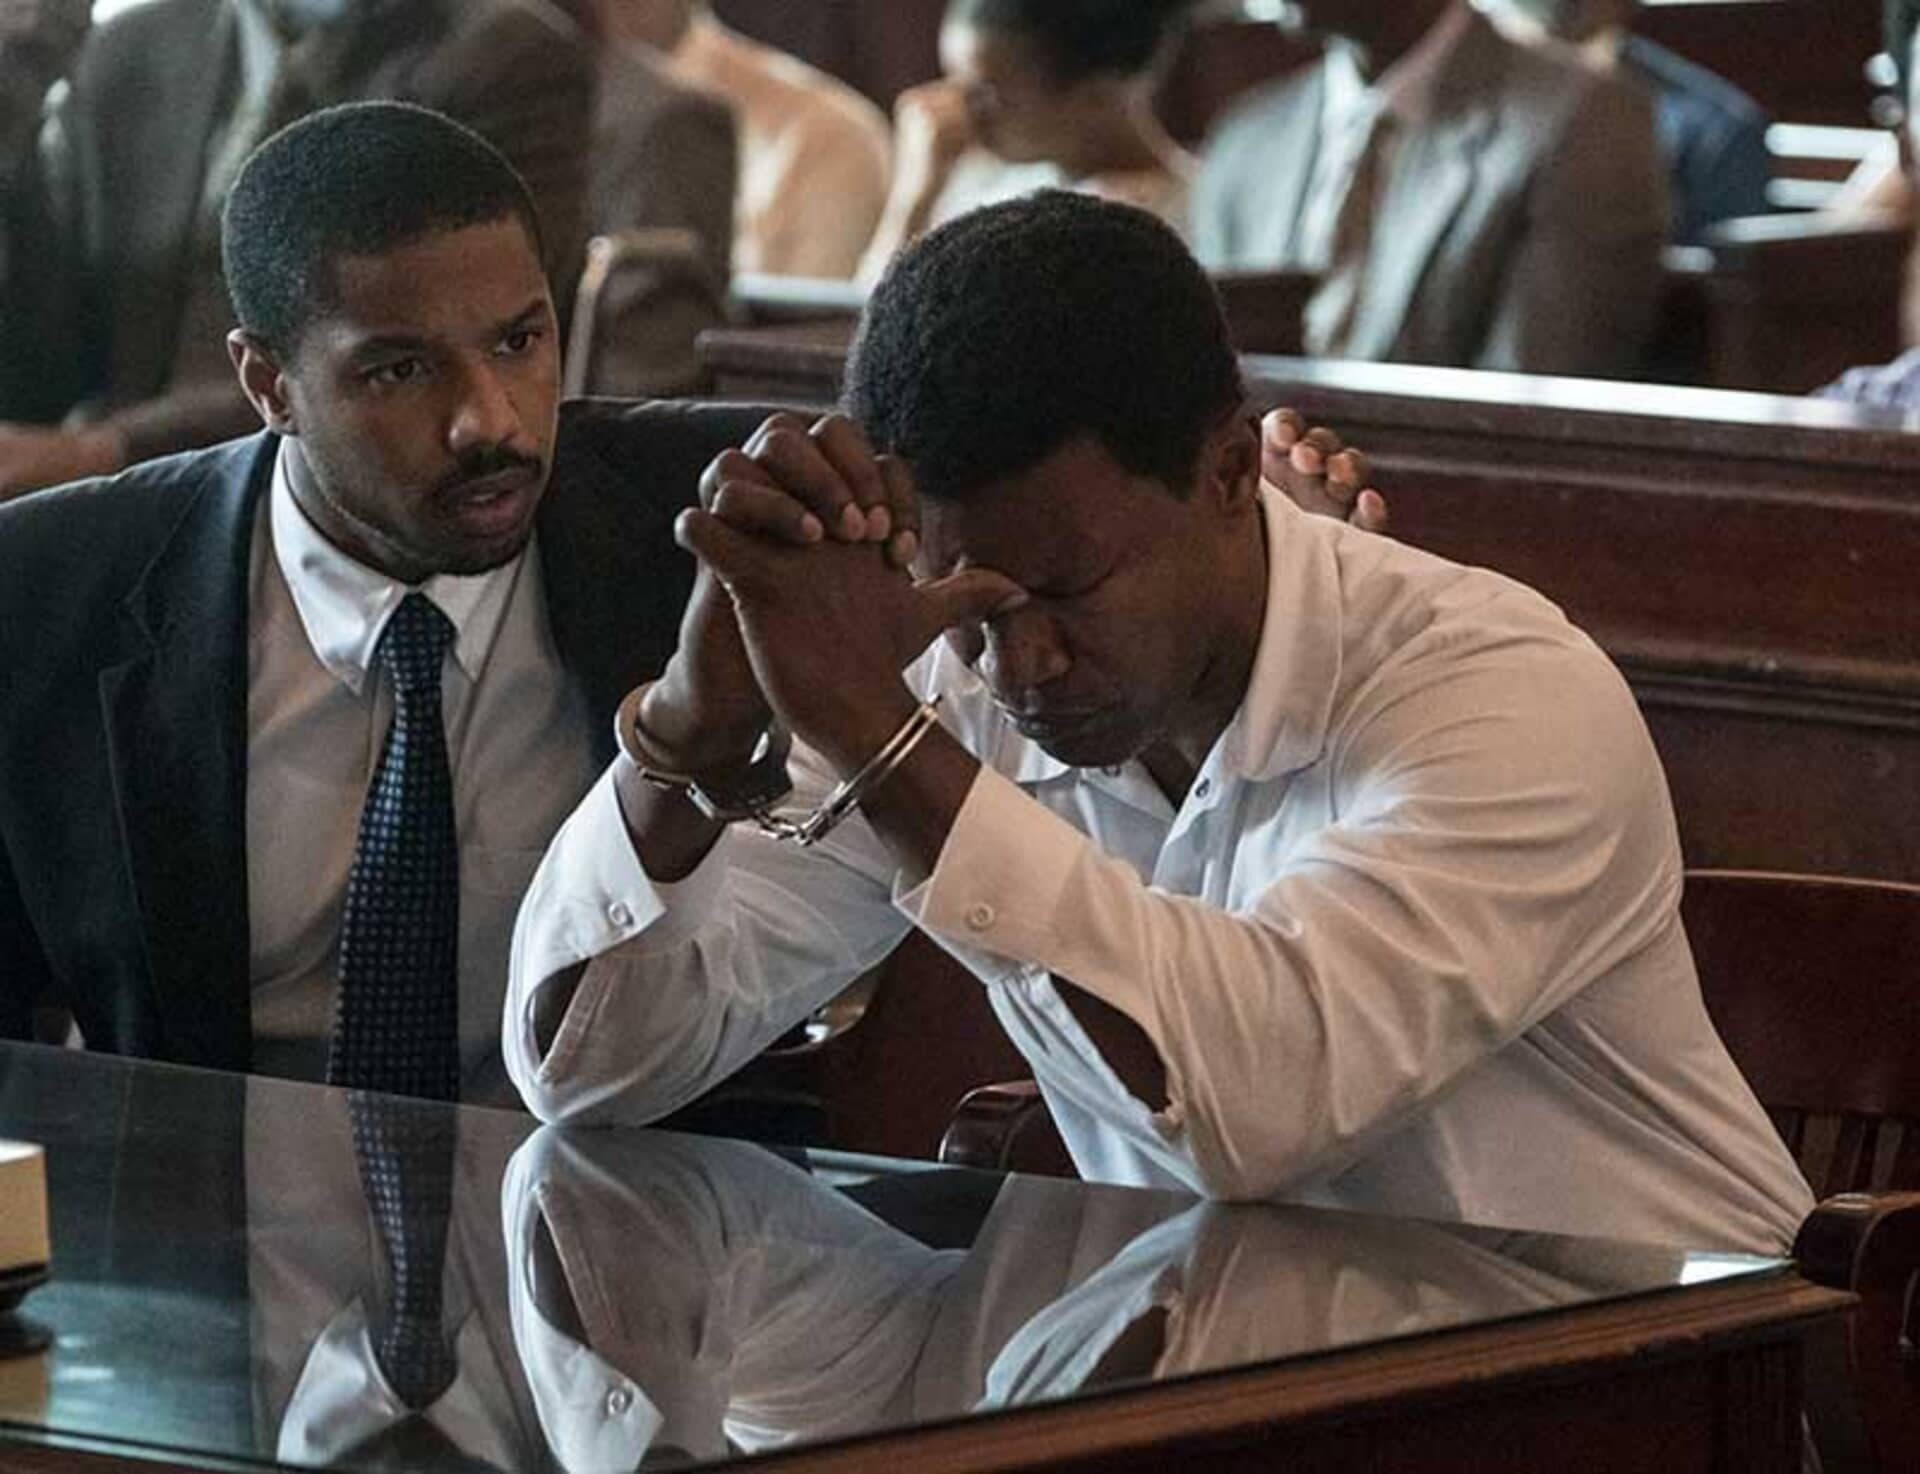 (L-r) MICHAEL B. JORDAN as Bryan Stevenson and JAMIE FOXX as Walter McMillian